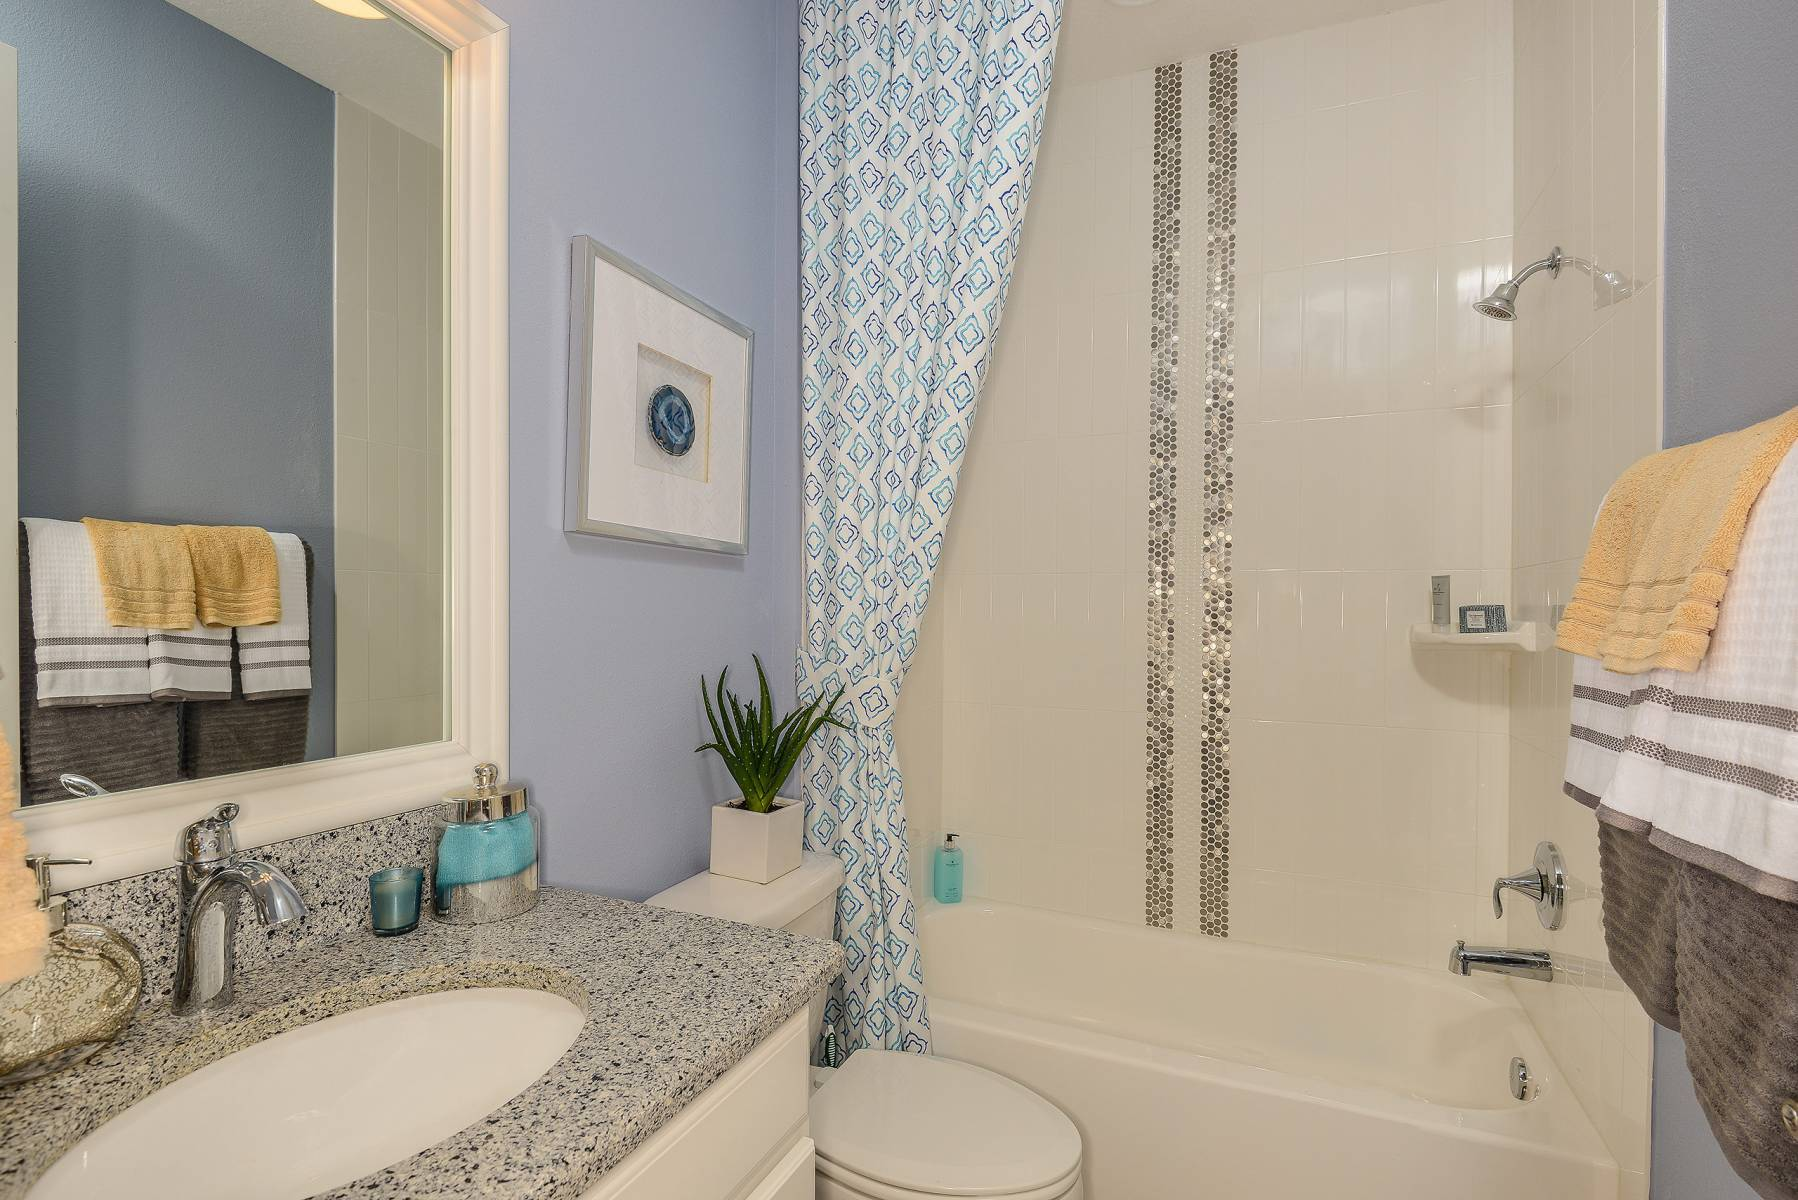 Bathroom featured in the Bayshore I By Homes by WestBay in Tampa-St. Petersburg, FL